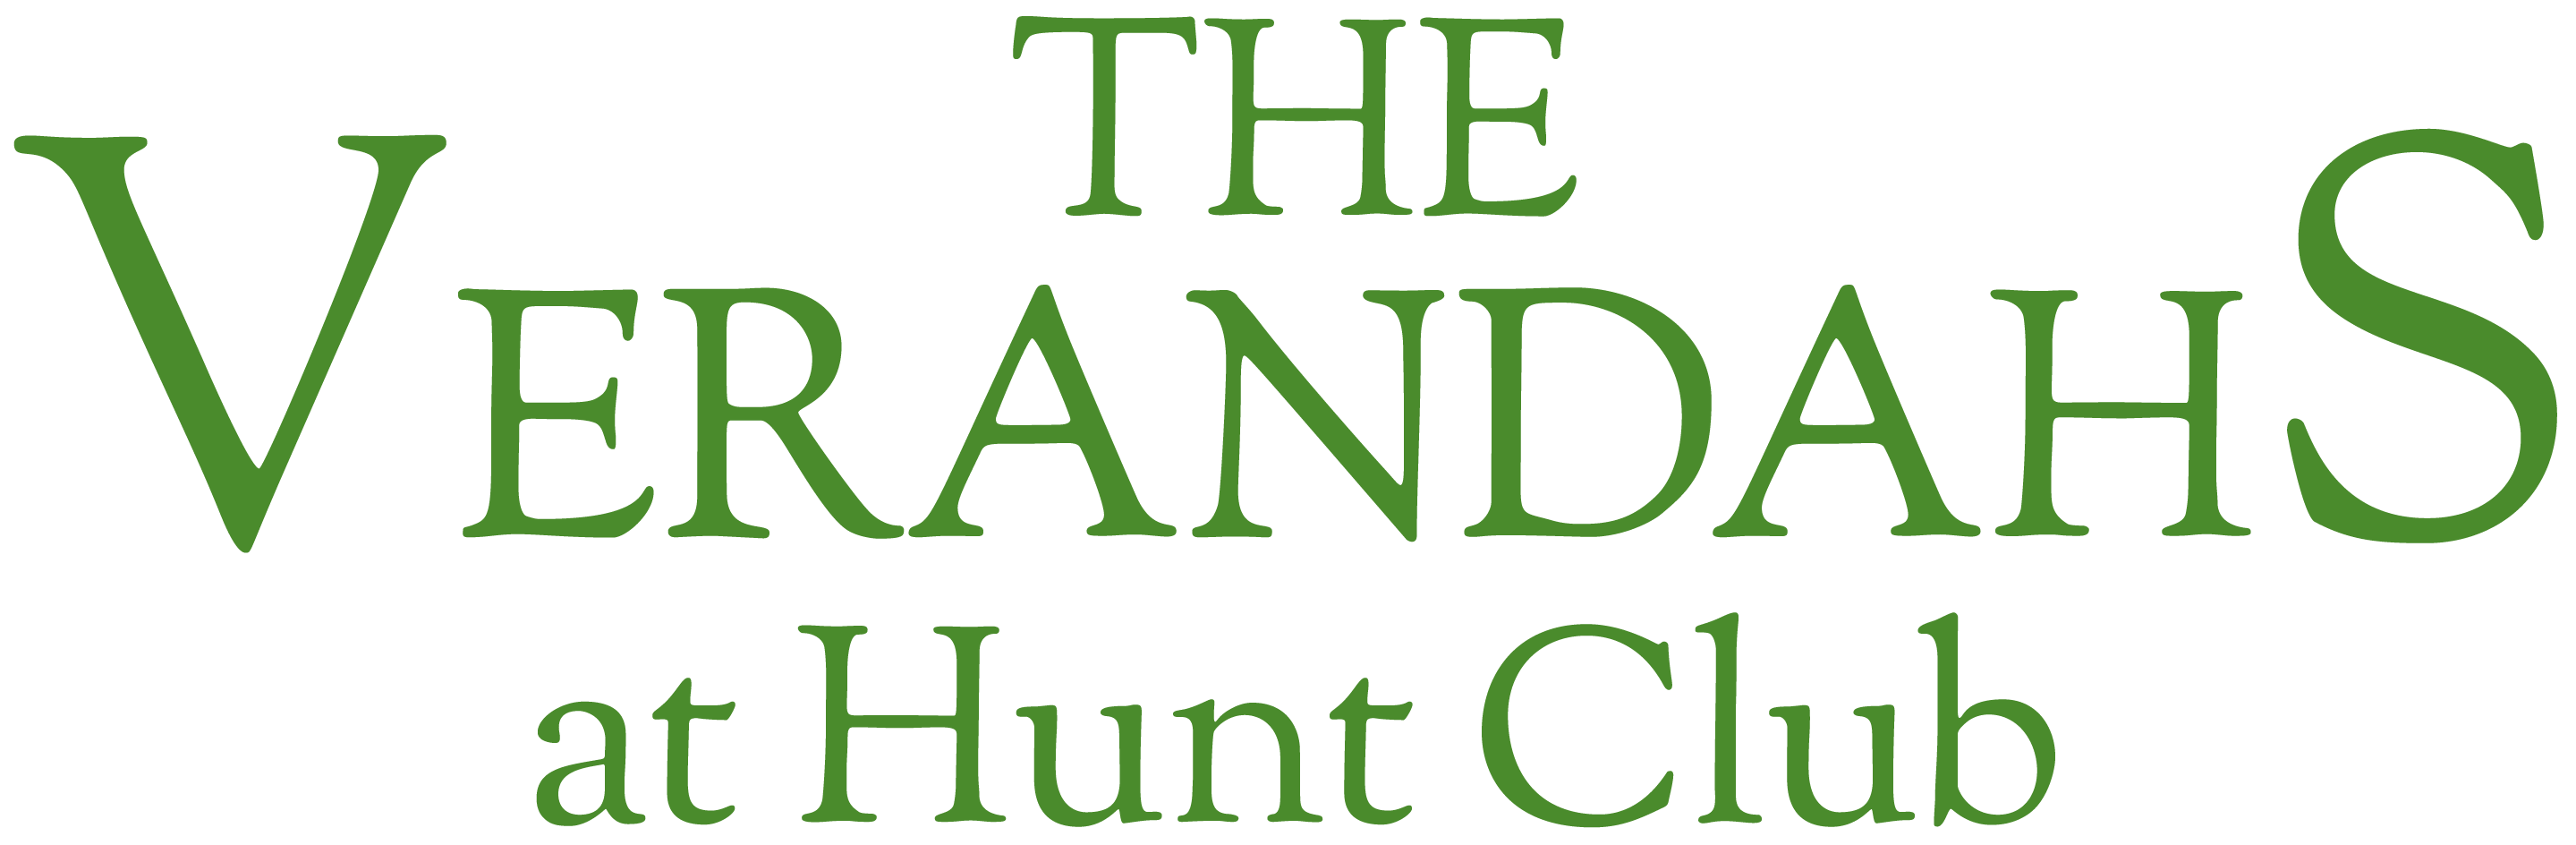 Verandahs at Hunt Club Logo